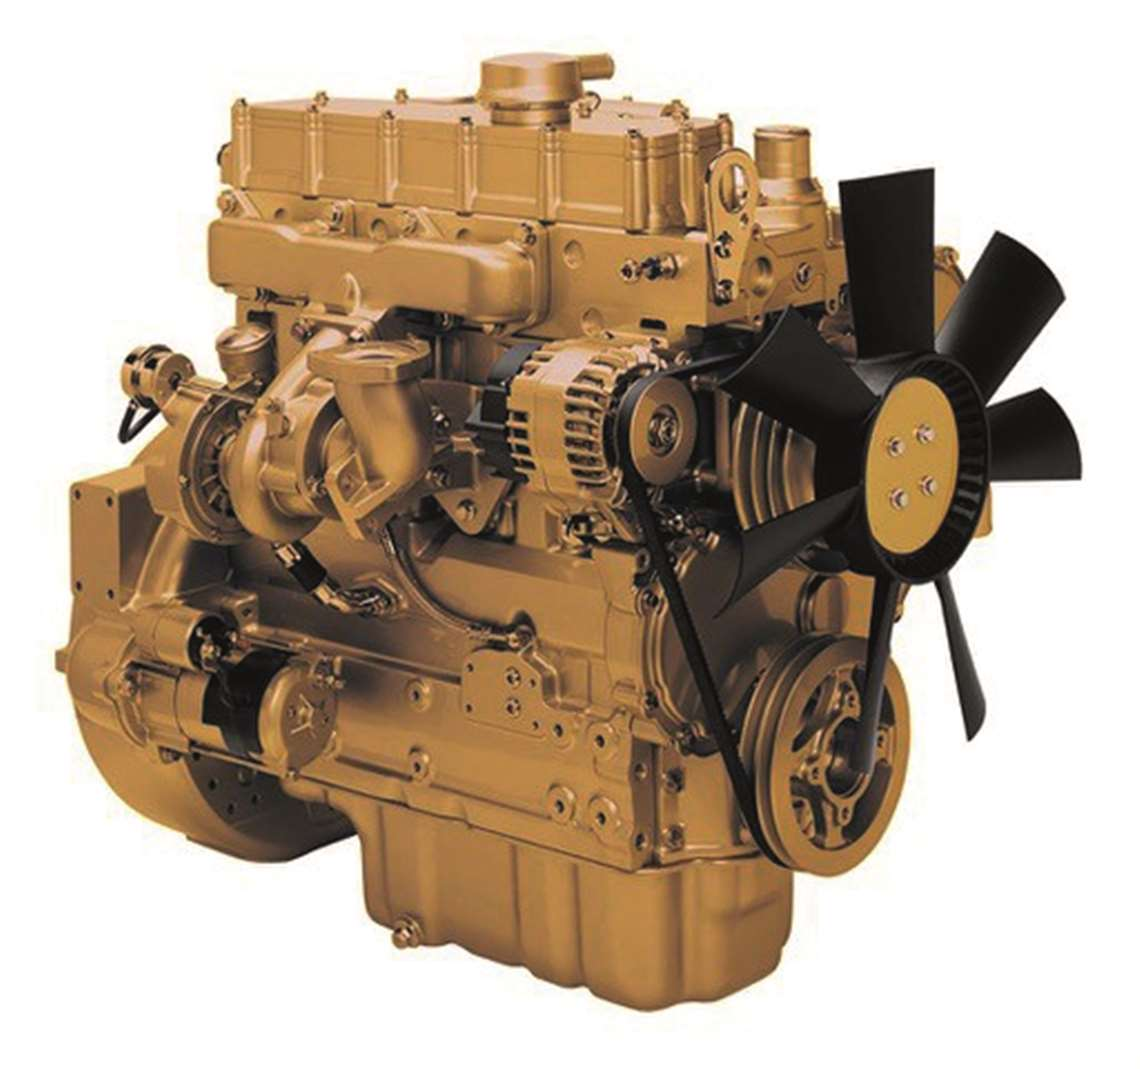 Caterpillar's Rental Engine